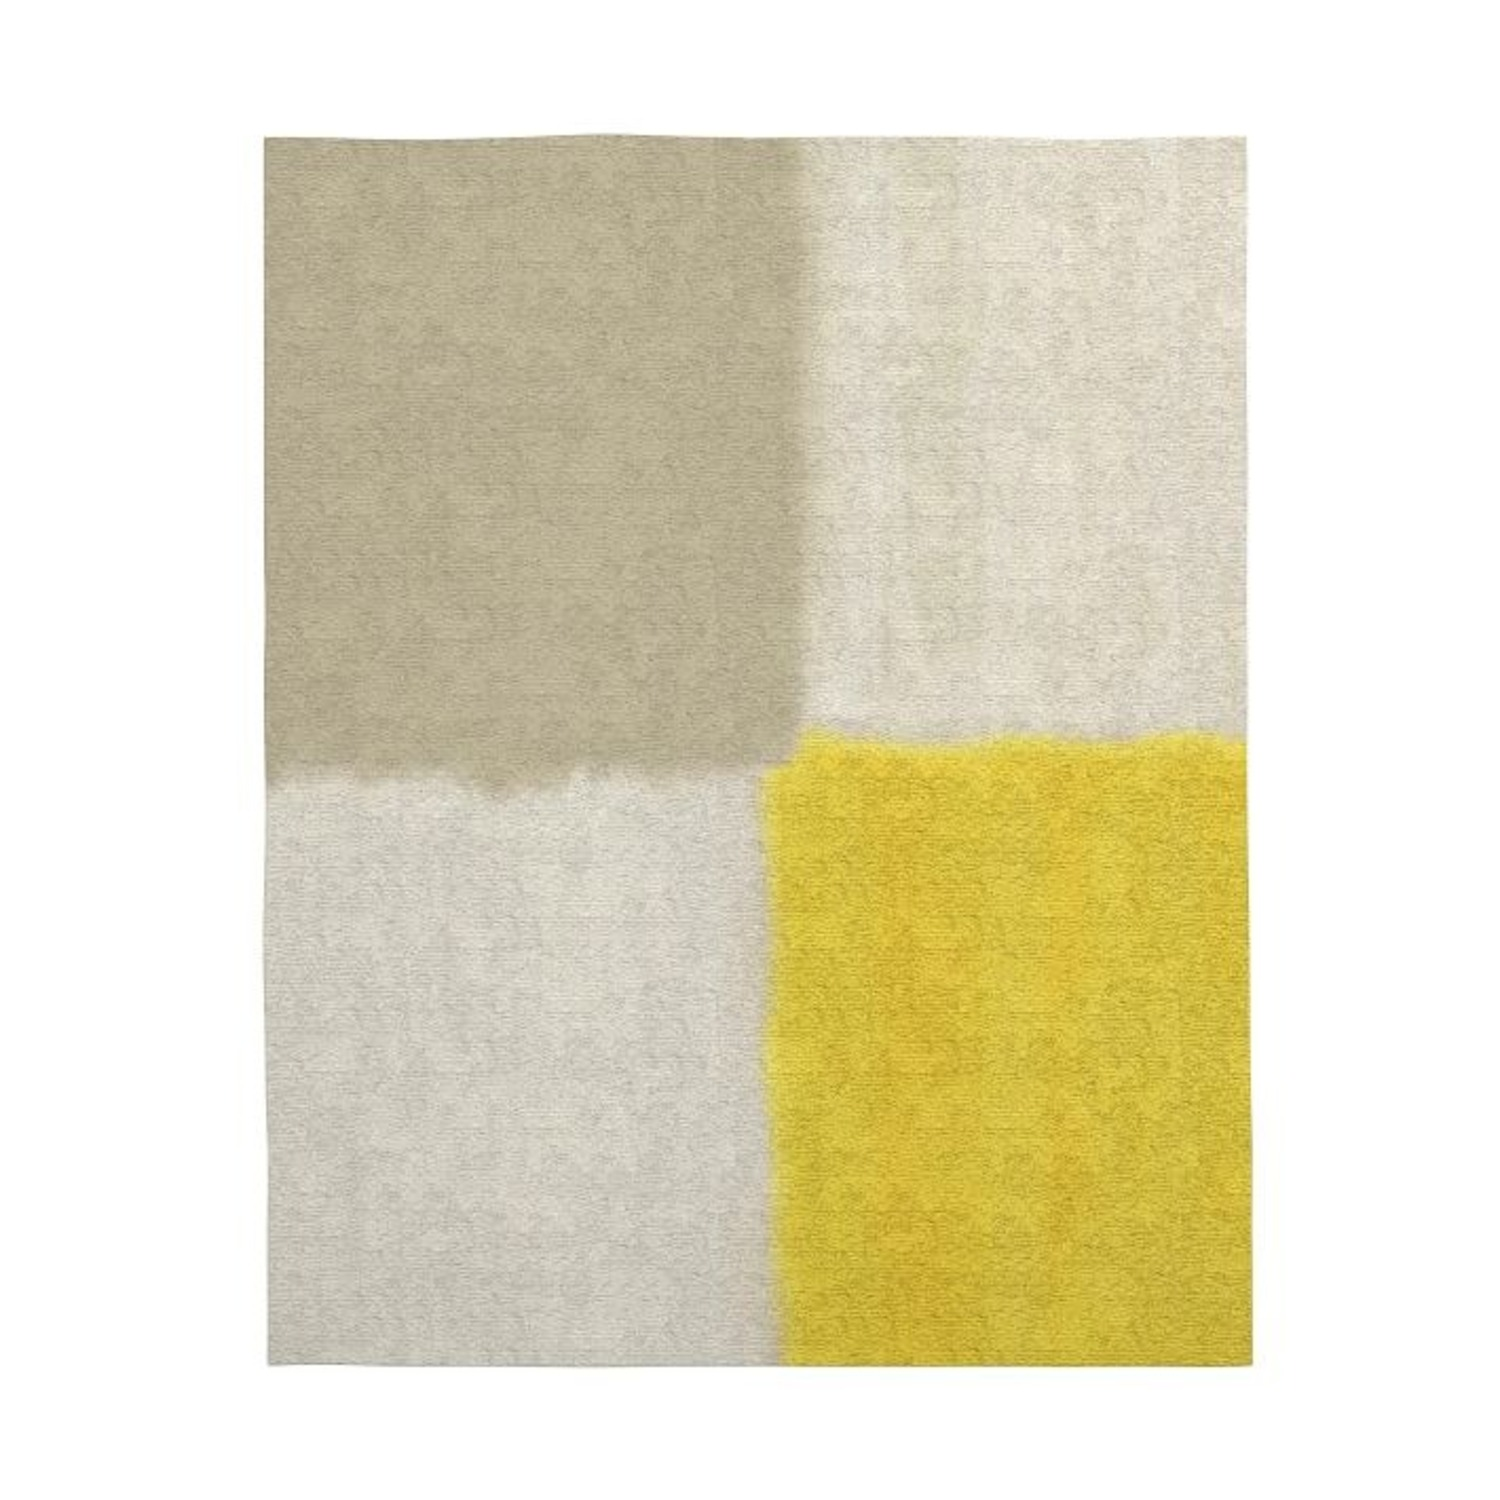 West Elm Area Rug 5' x 8' Frost Gray + Yellow - image-1